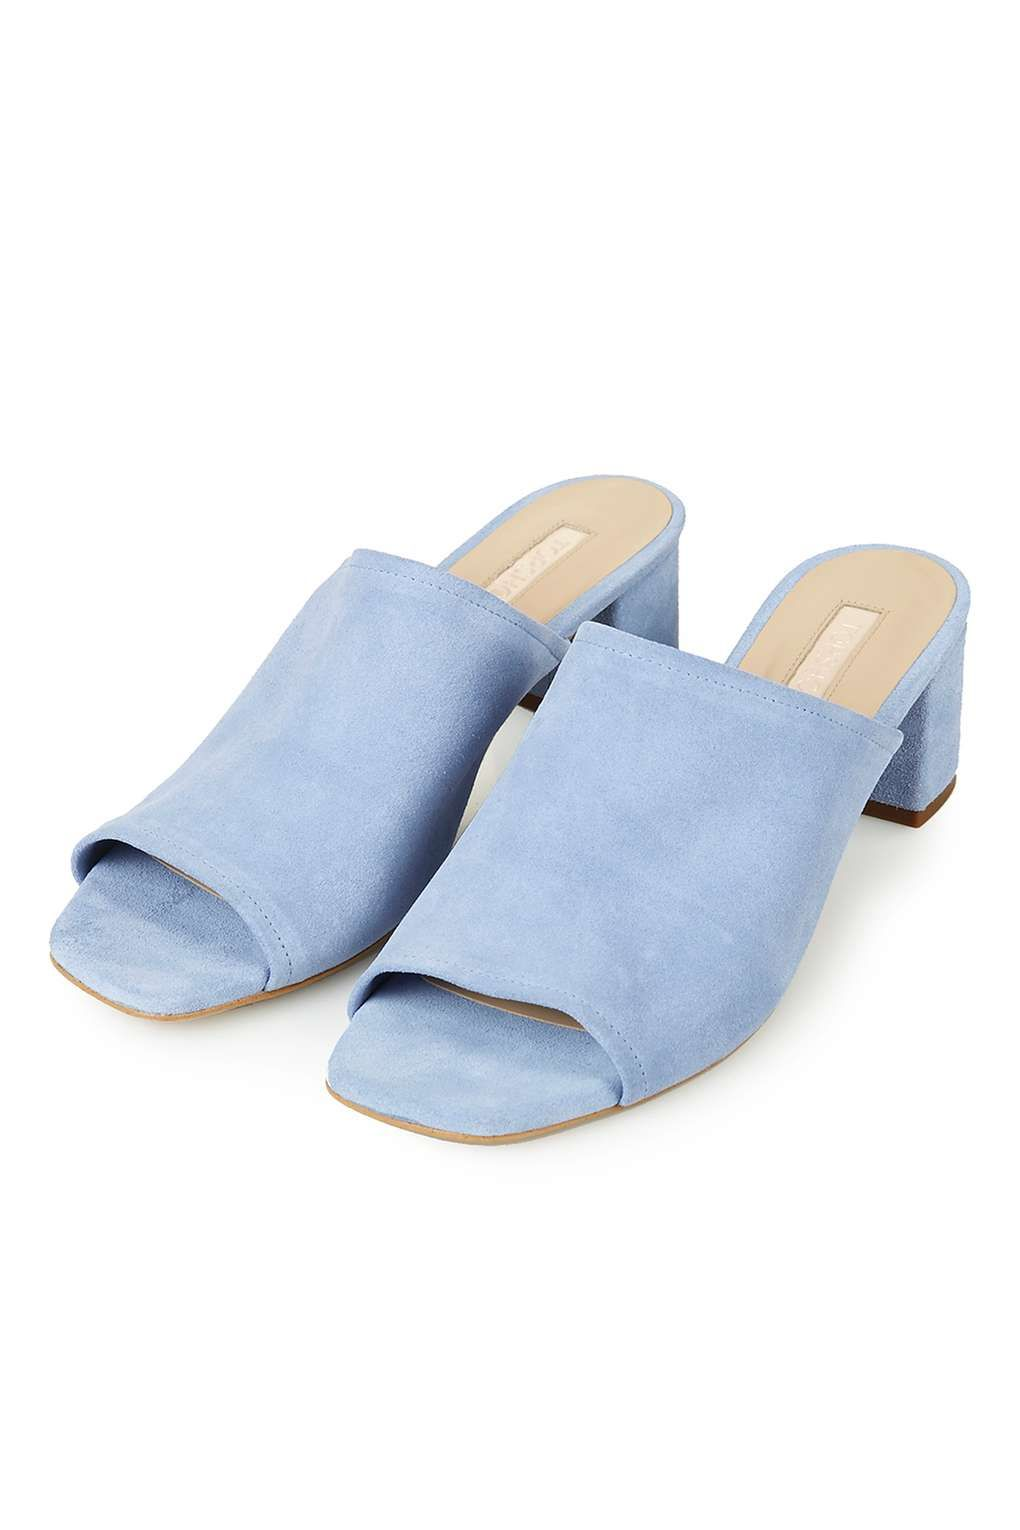 f354c68d2ac NINO Suede Mules - Shoes